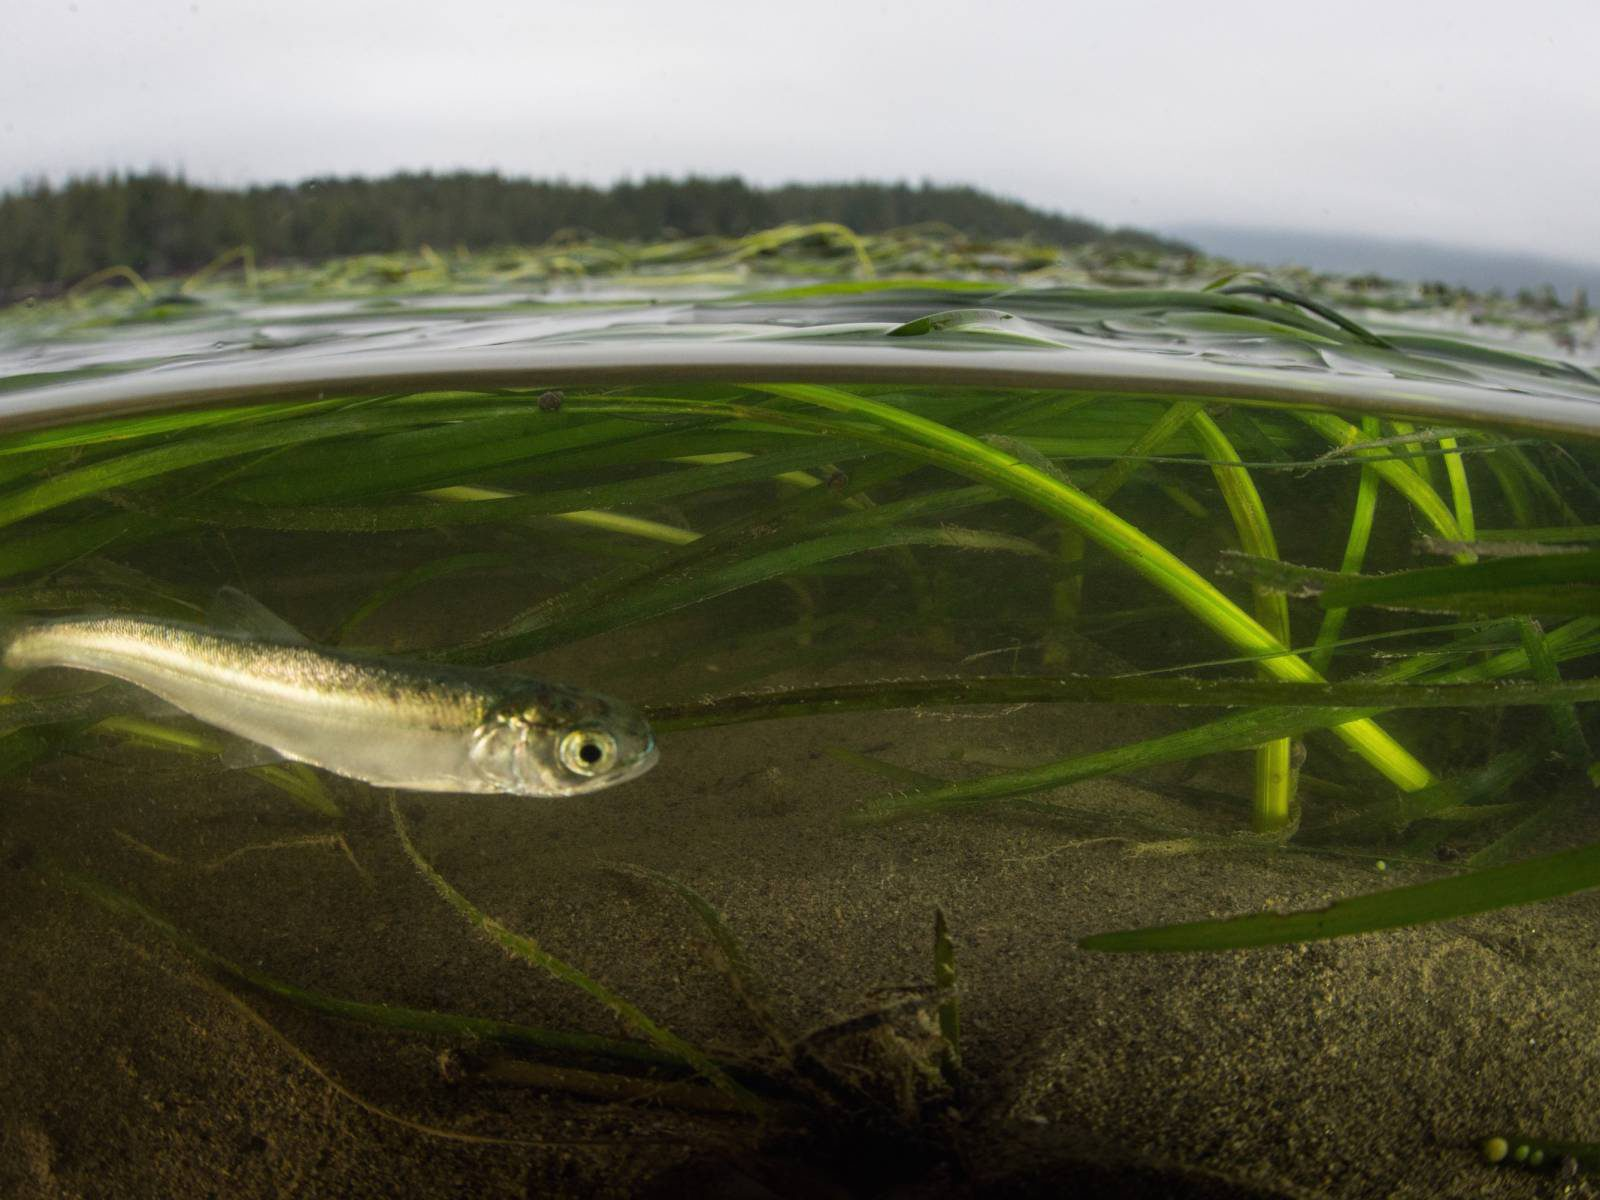 [Image: Sockeye Smolt in Eelgrass by Brian Huntington]